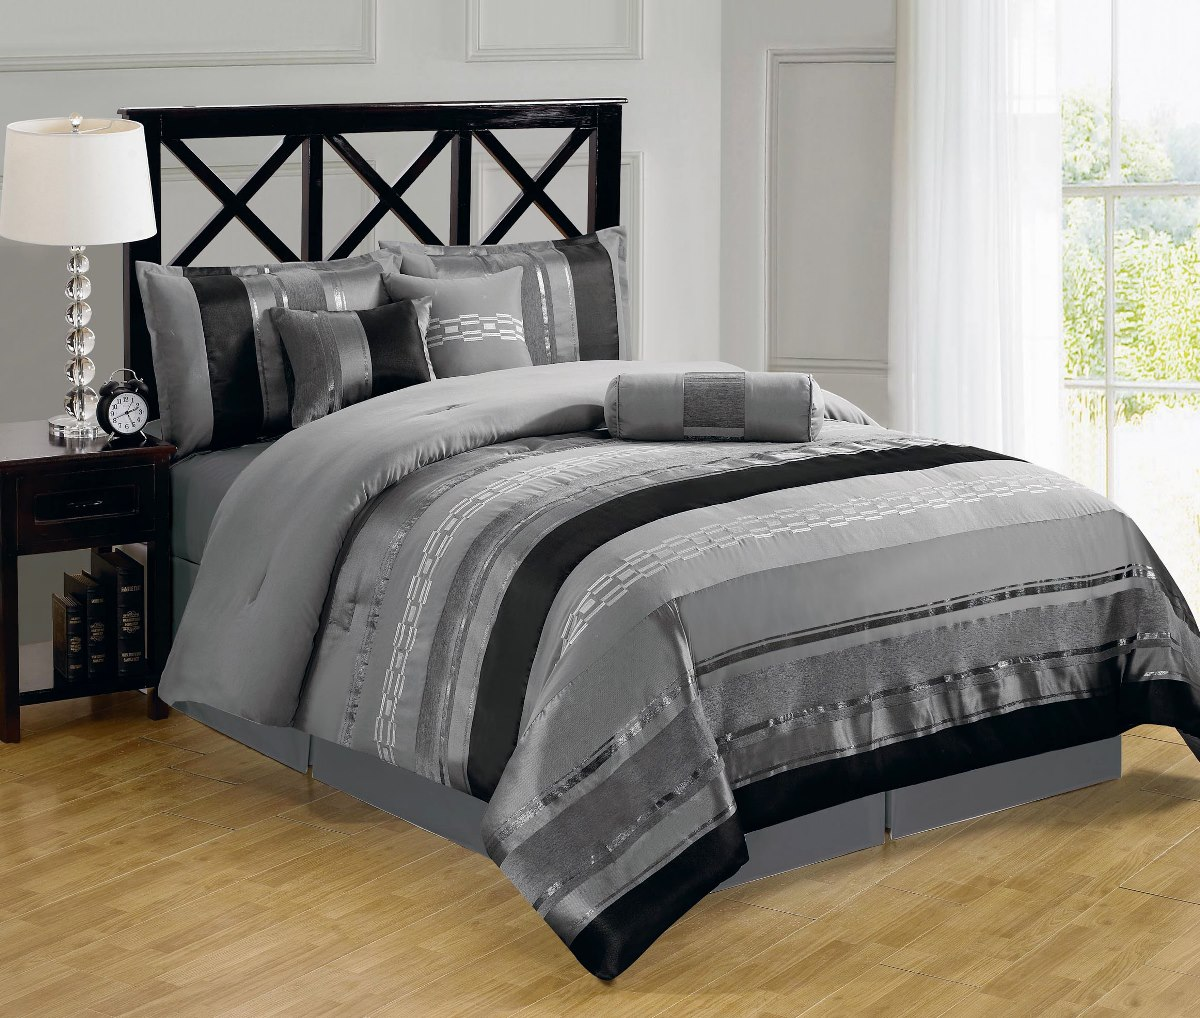 Walmart Comforter Sets | Camo Bedding Sets Queen | Queen Bedding Sets